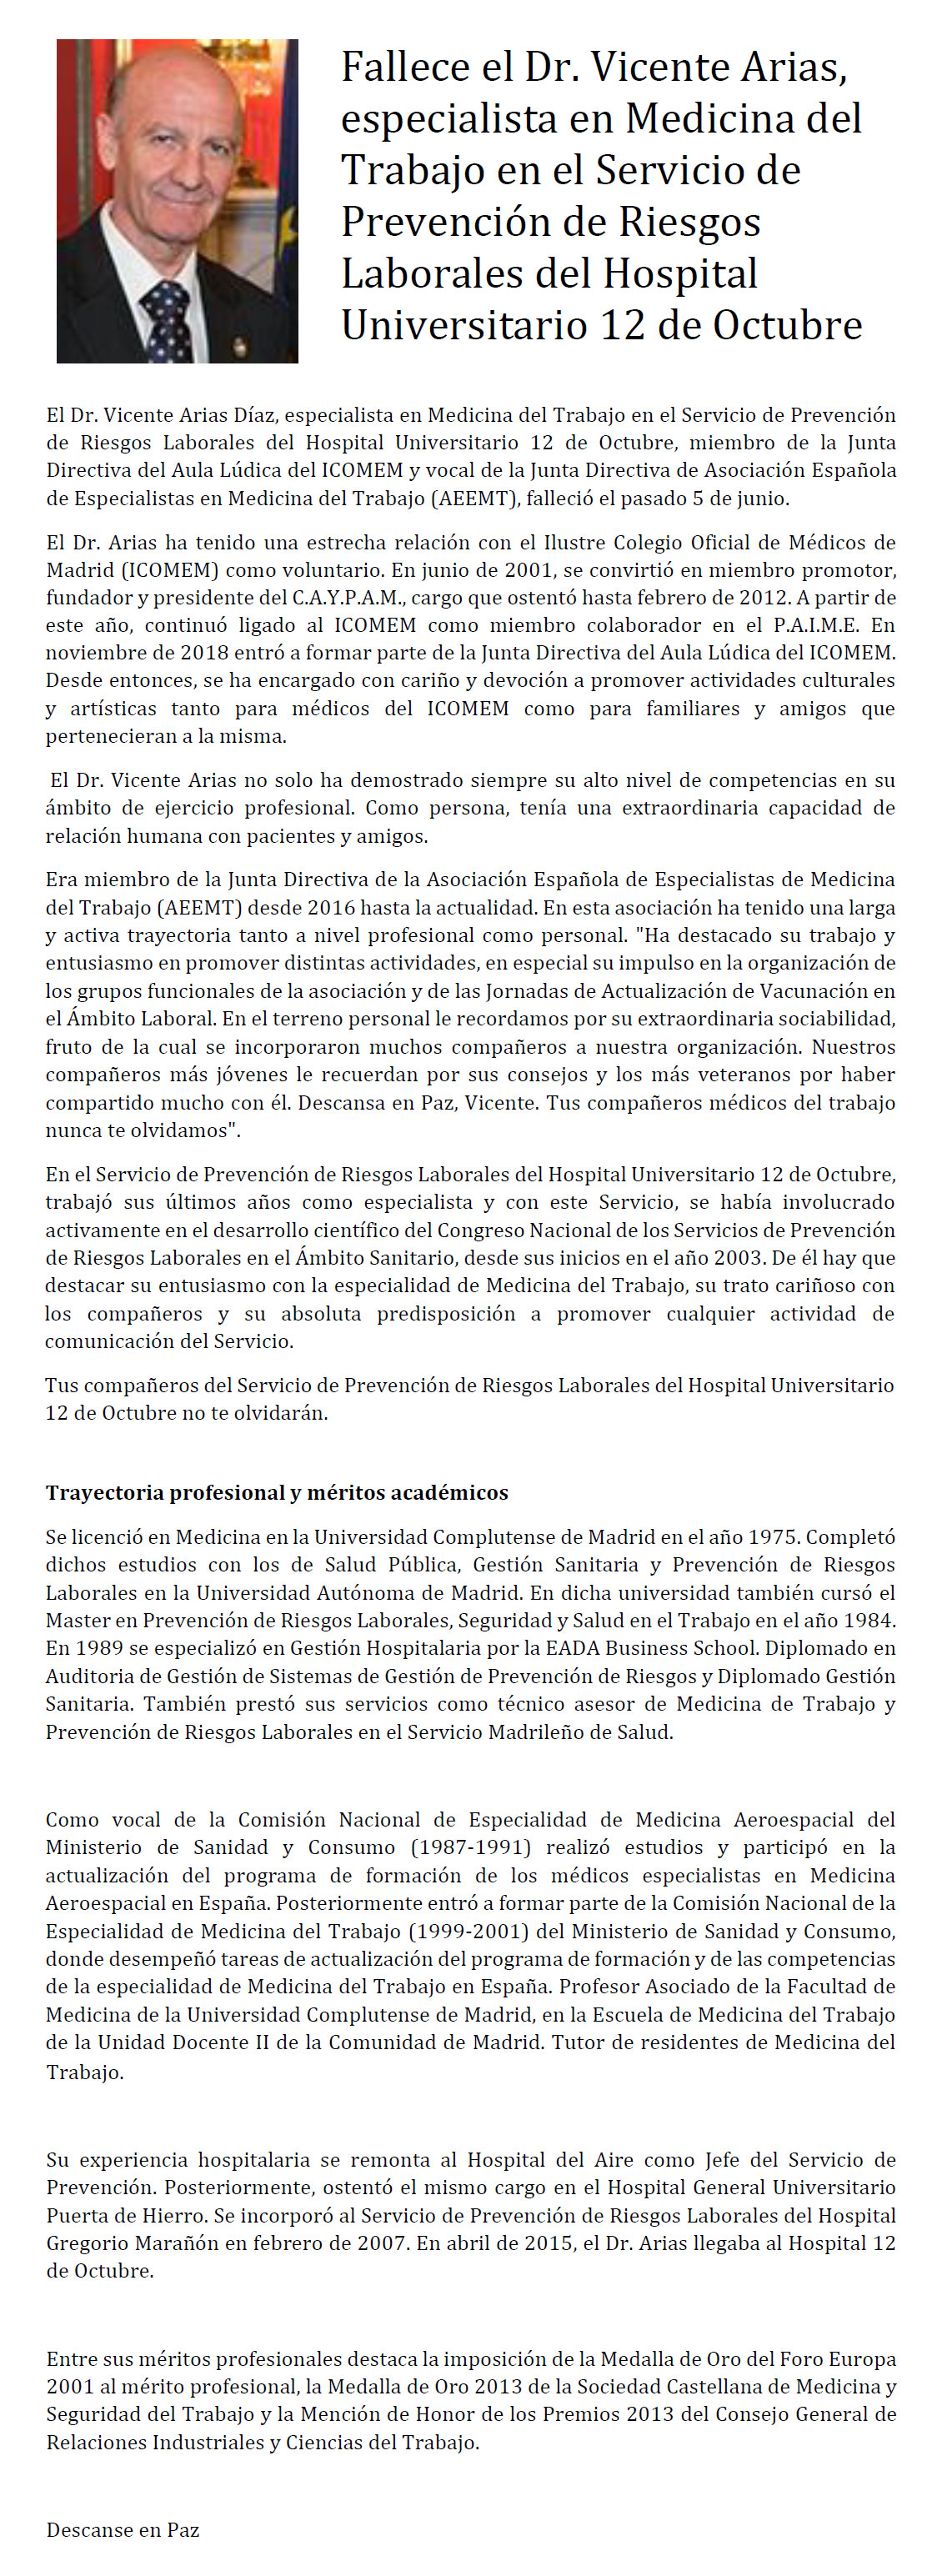 Fallece el Dr. Vicente Arias